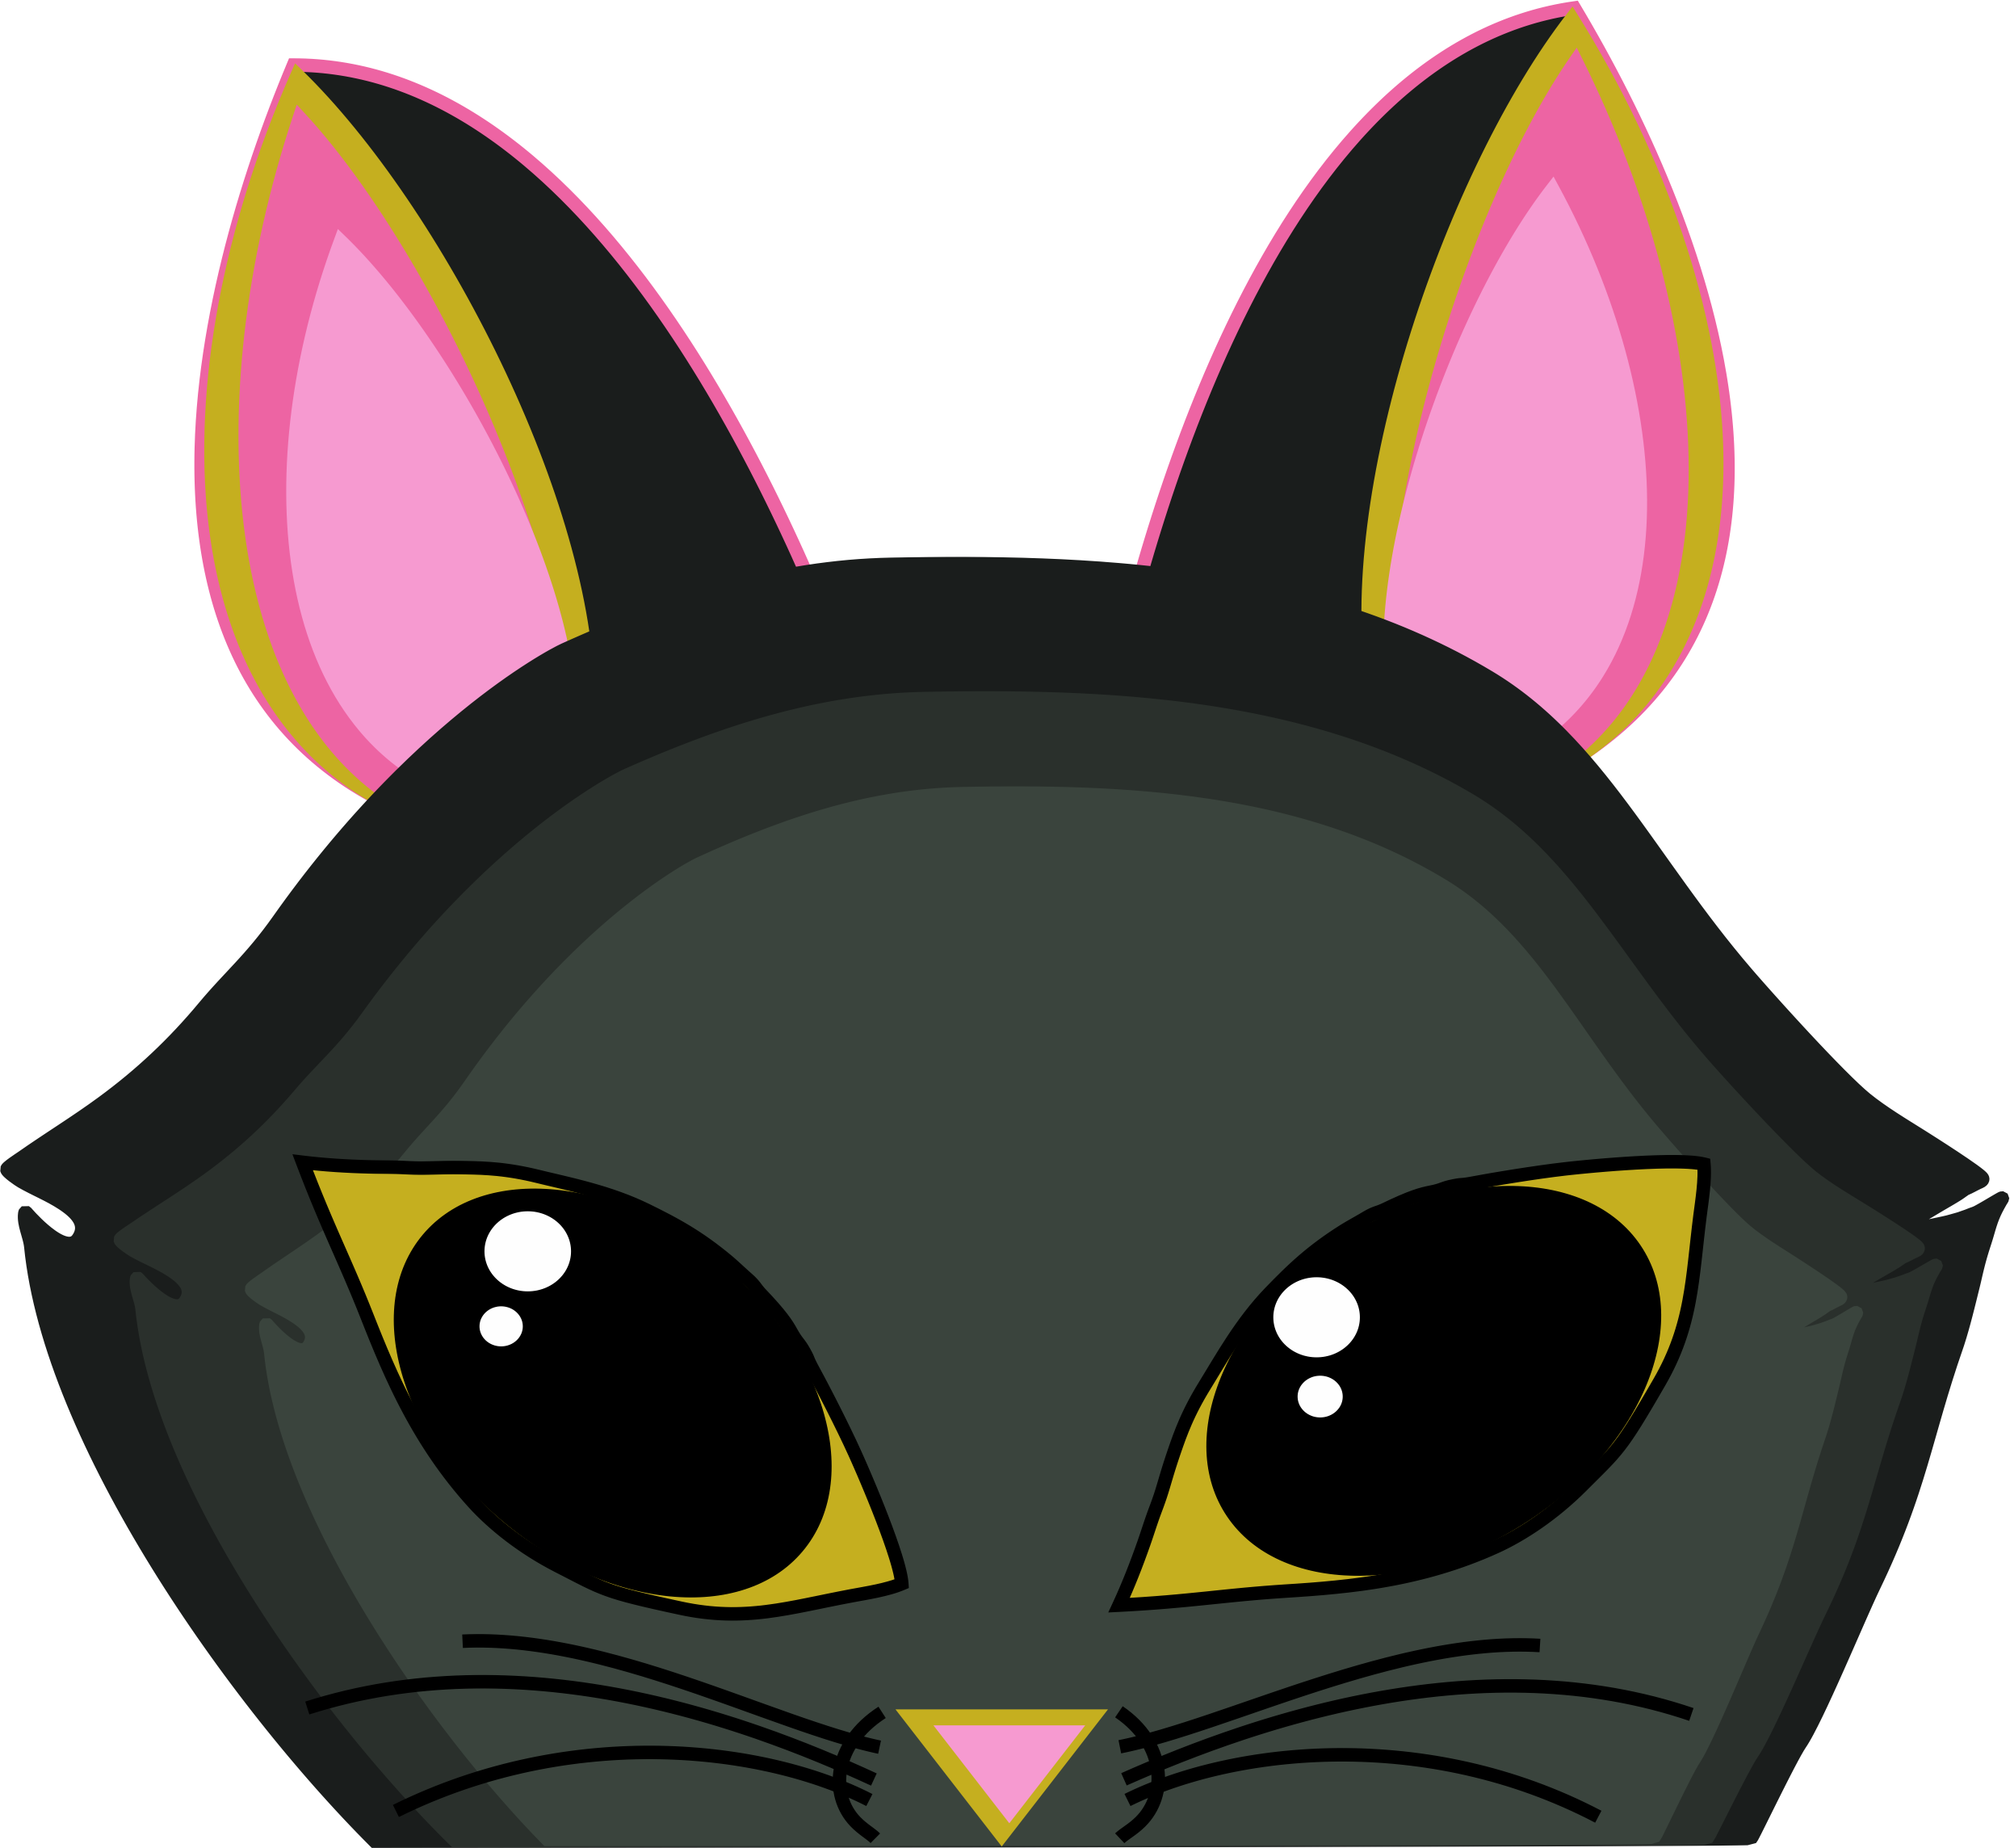 Cat ears and whiskers clipart graphic free Waiting Cat - Corel Discovery Center graphic free